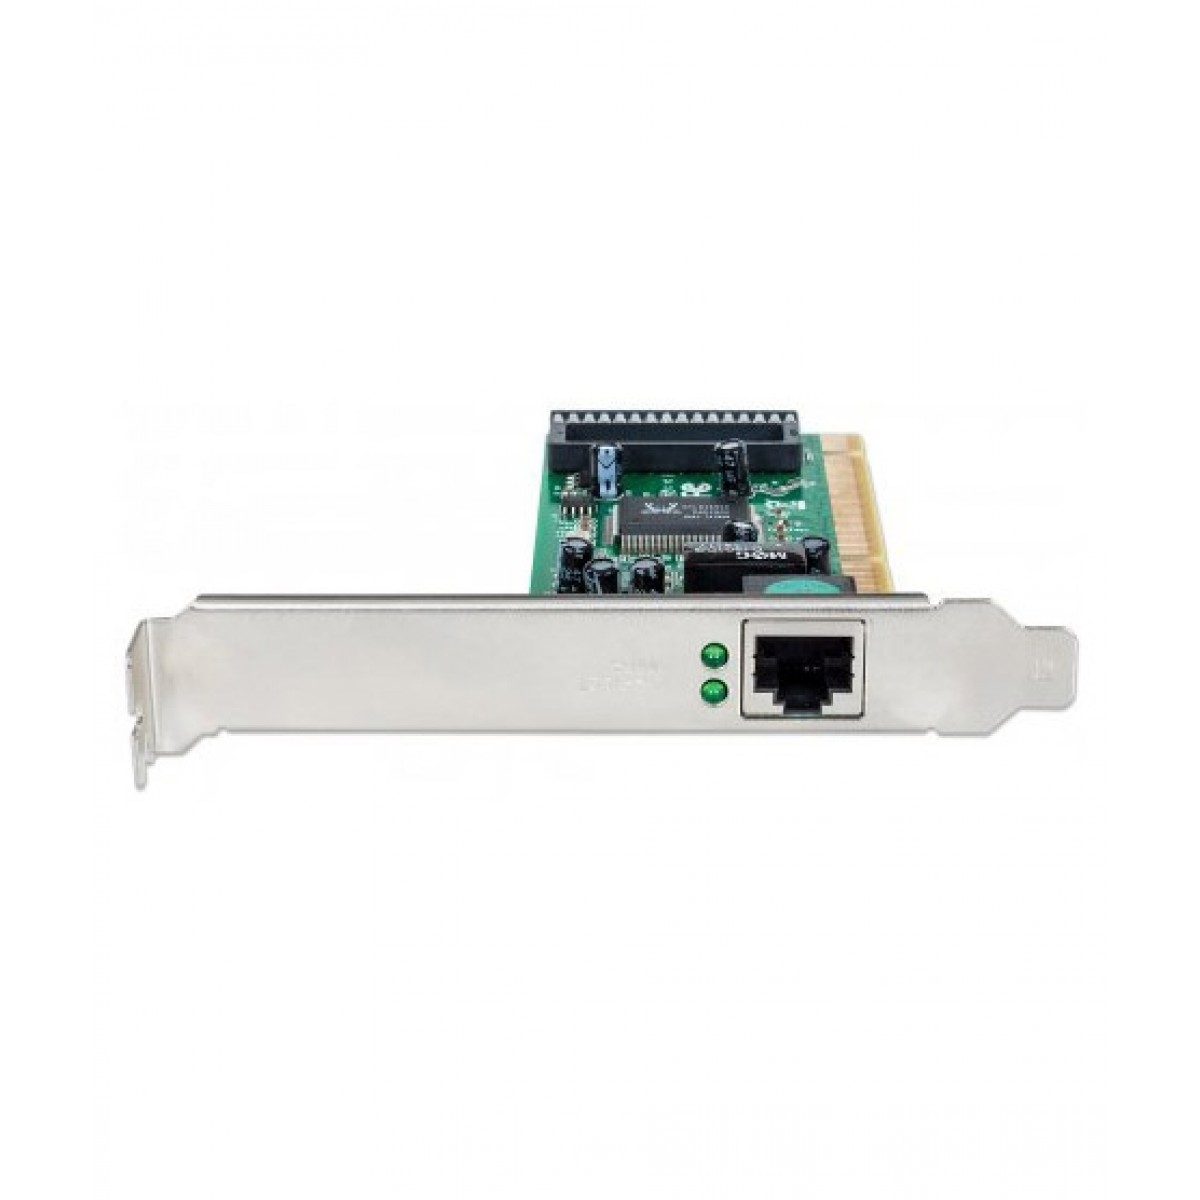 INTELLINET PCI 10 100BASE TX LAN CARD V2.0 TREIBER WINDOWS 10